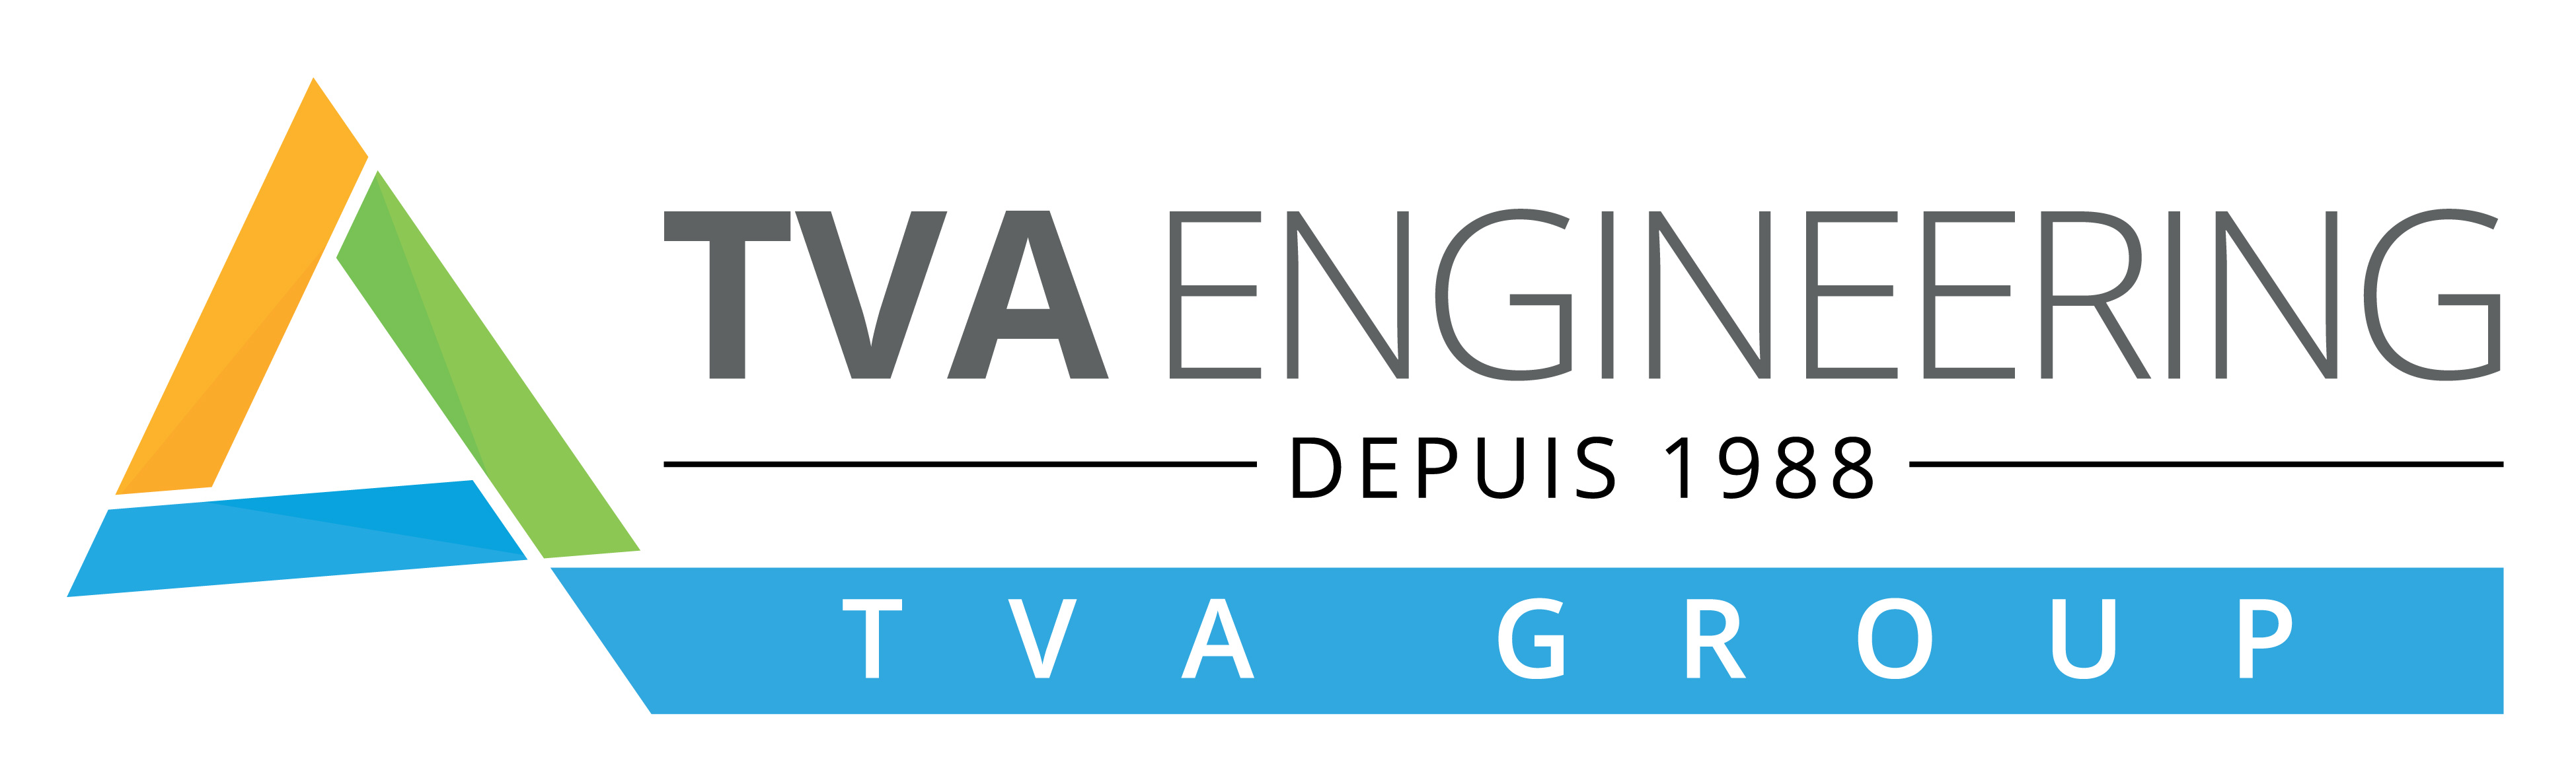 TVA Engineering